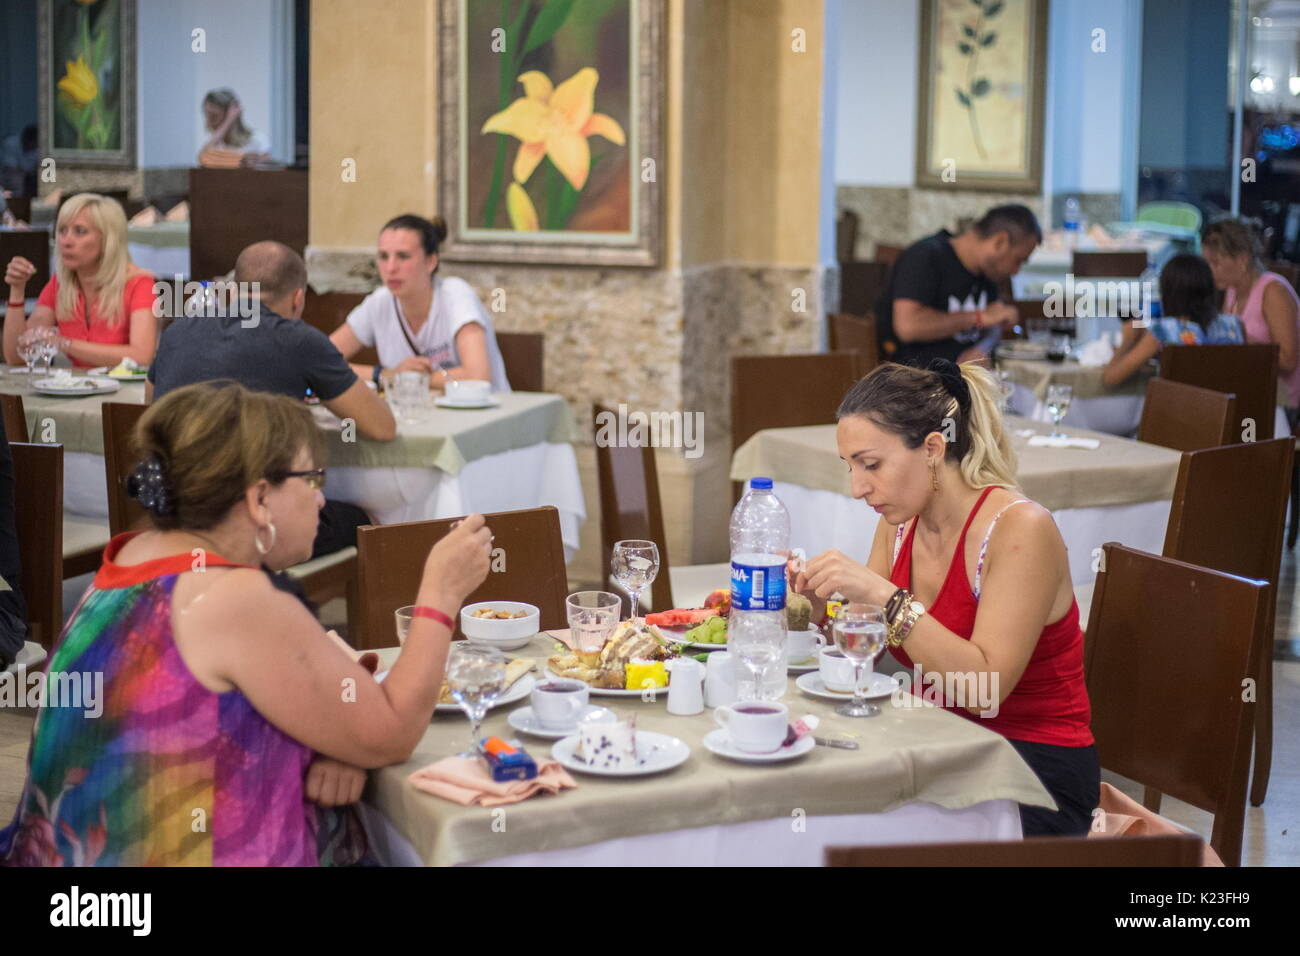 Kemer, Turkey. 26th Aug, 2017. Tourists in a buffet at the Meder Resort Hotel. Credit: Sergei Bobylev/TASS/Alamy Live News - Stock Image